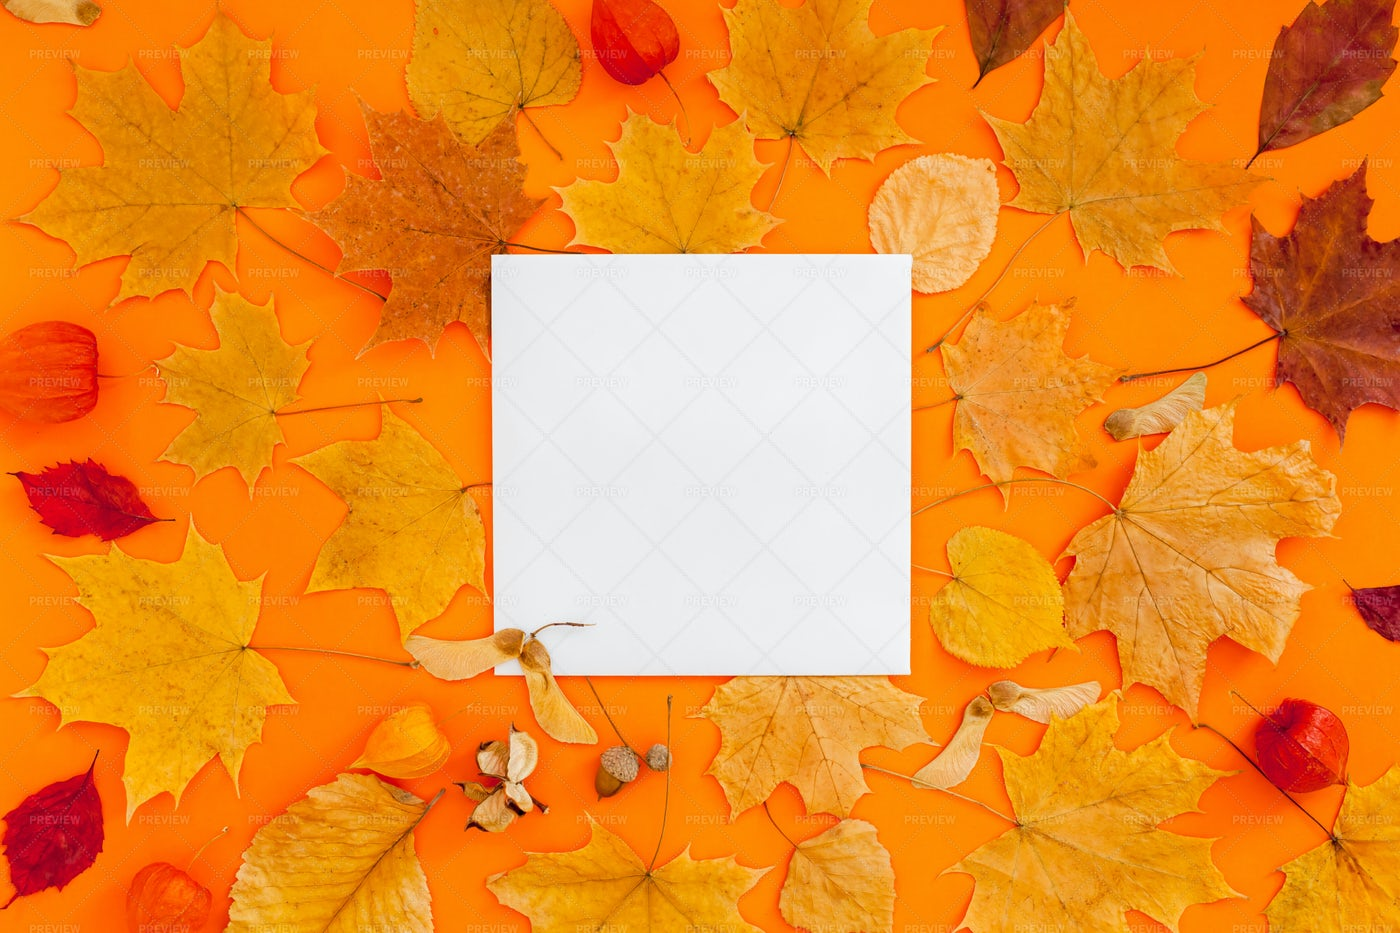 Autumn Leaves And Postcard: Stock Photos